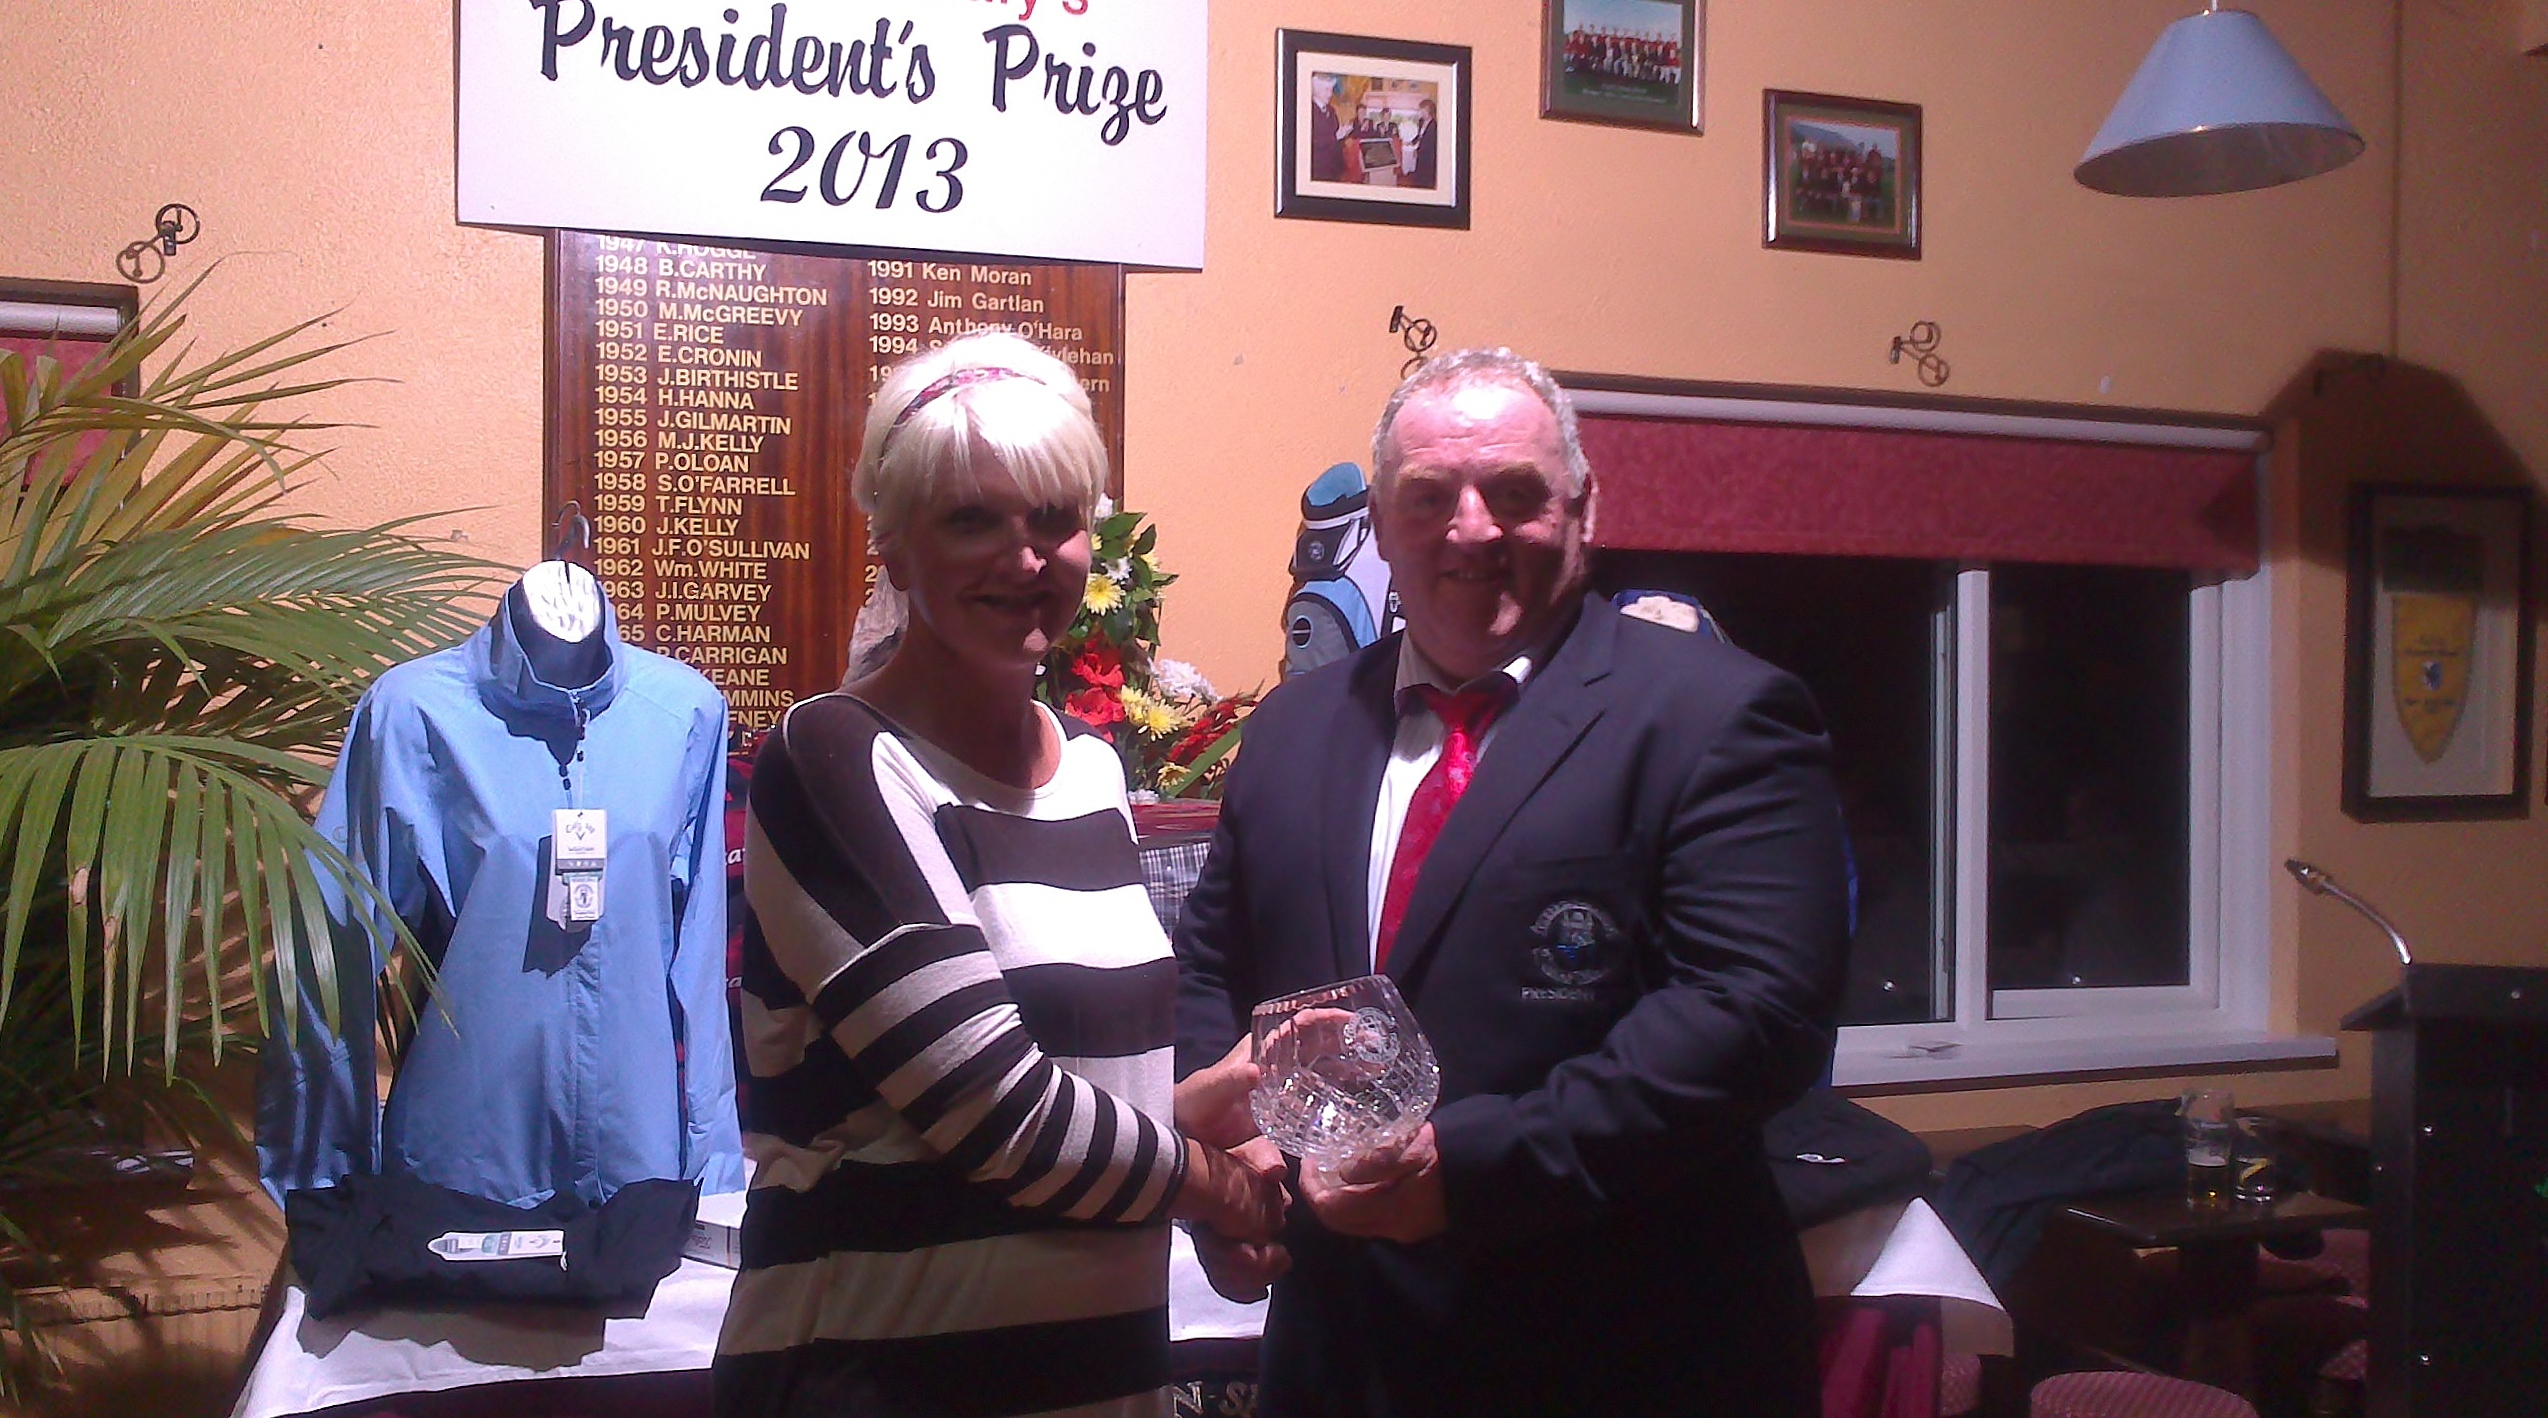 Liz McAvoy is presented with Presidents Prize to Ladies 2013 by Club President Mickey Daly